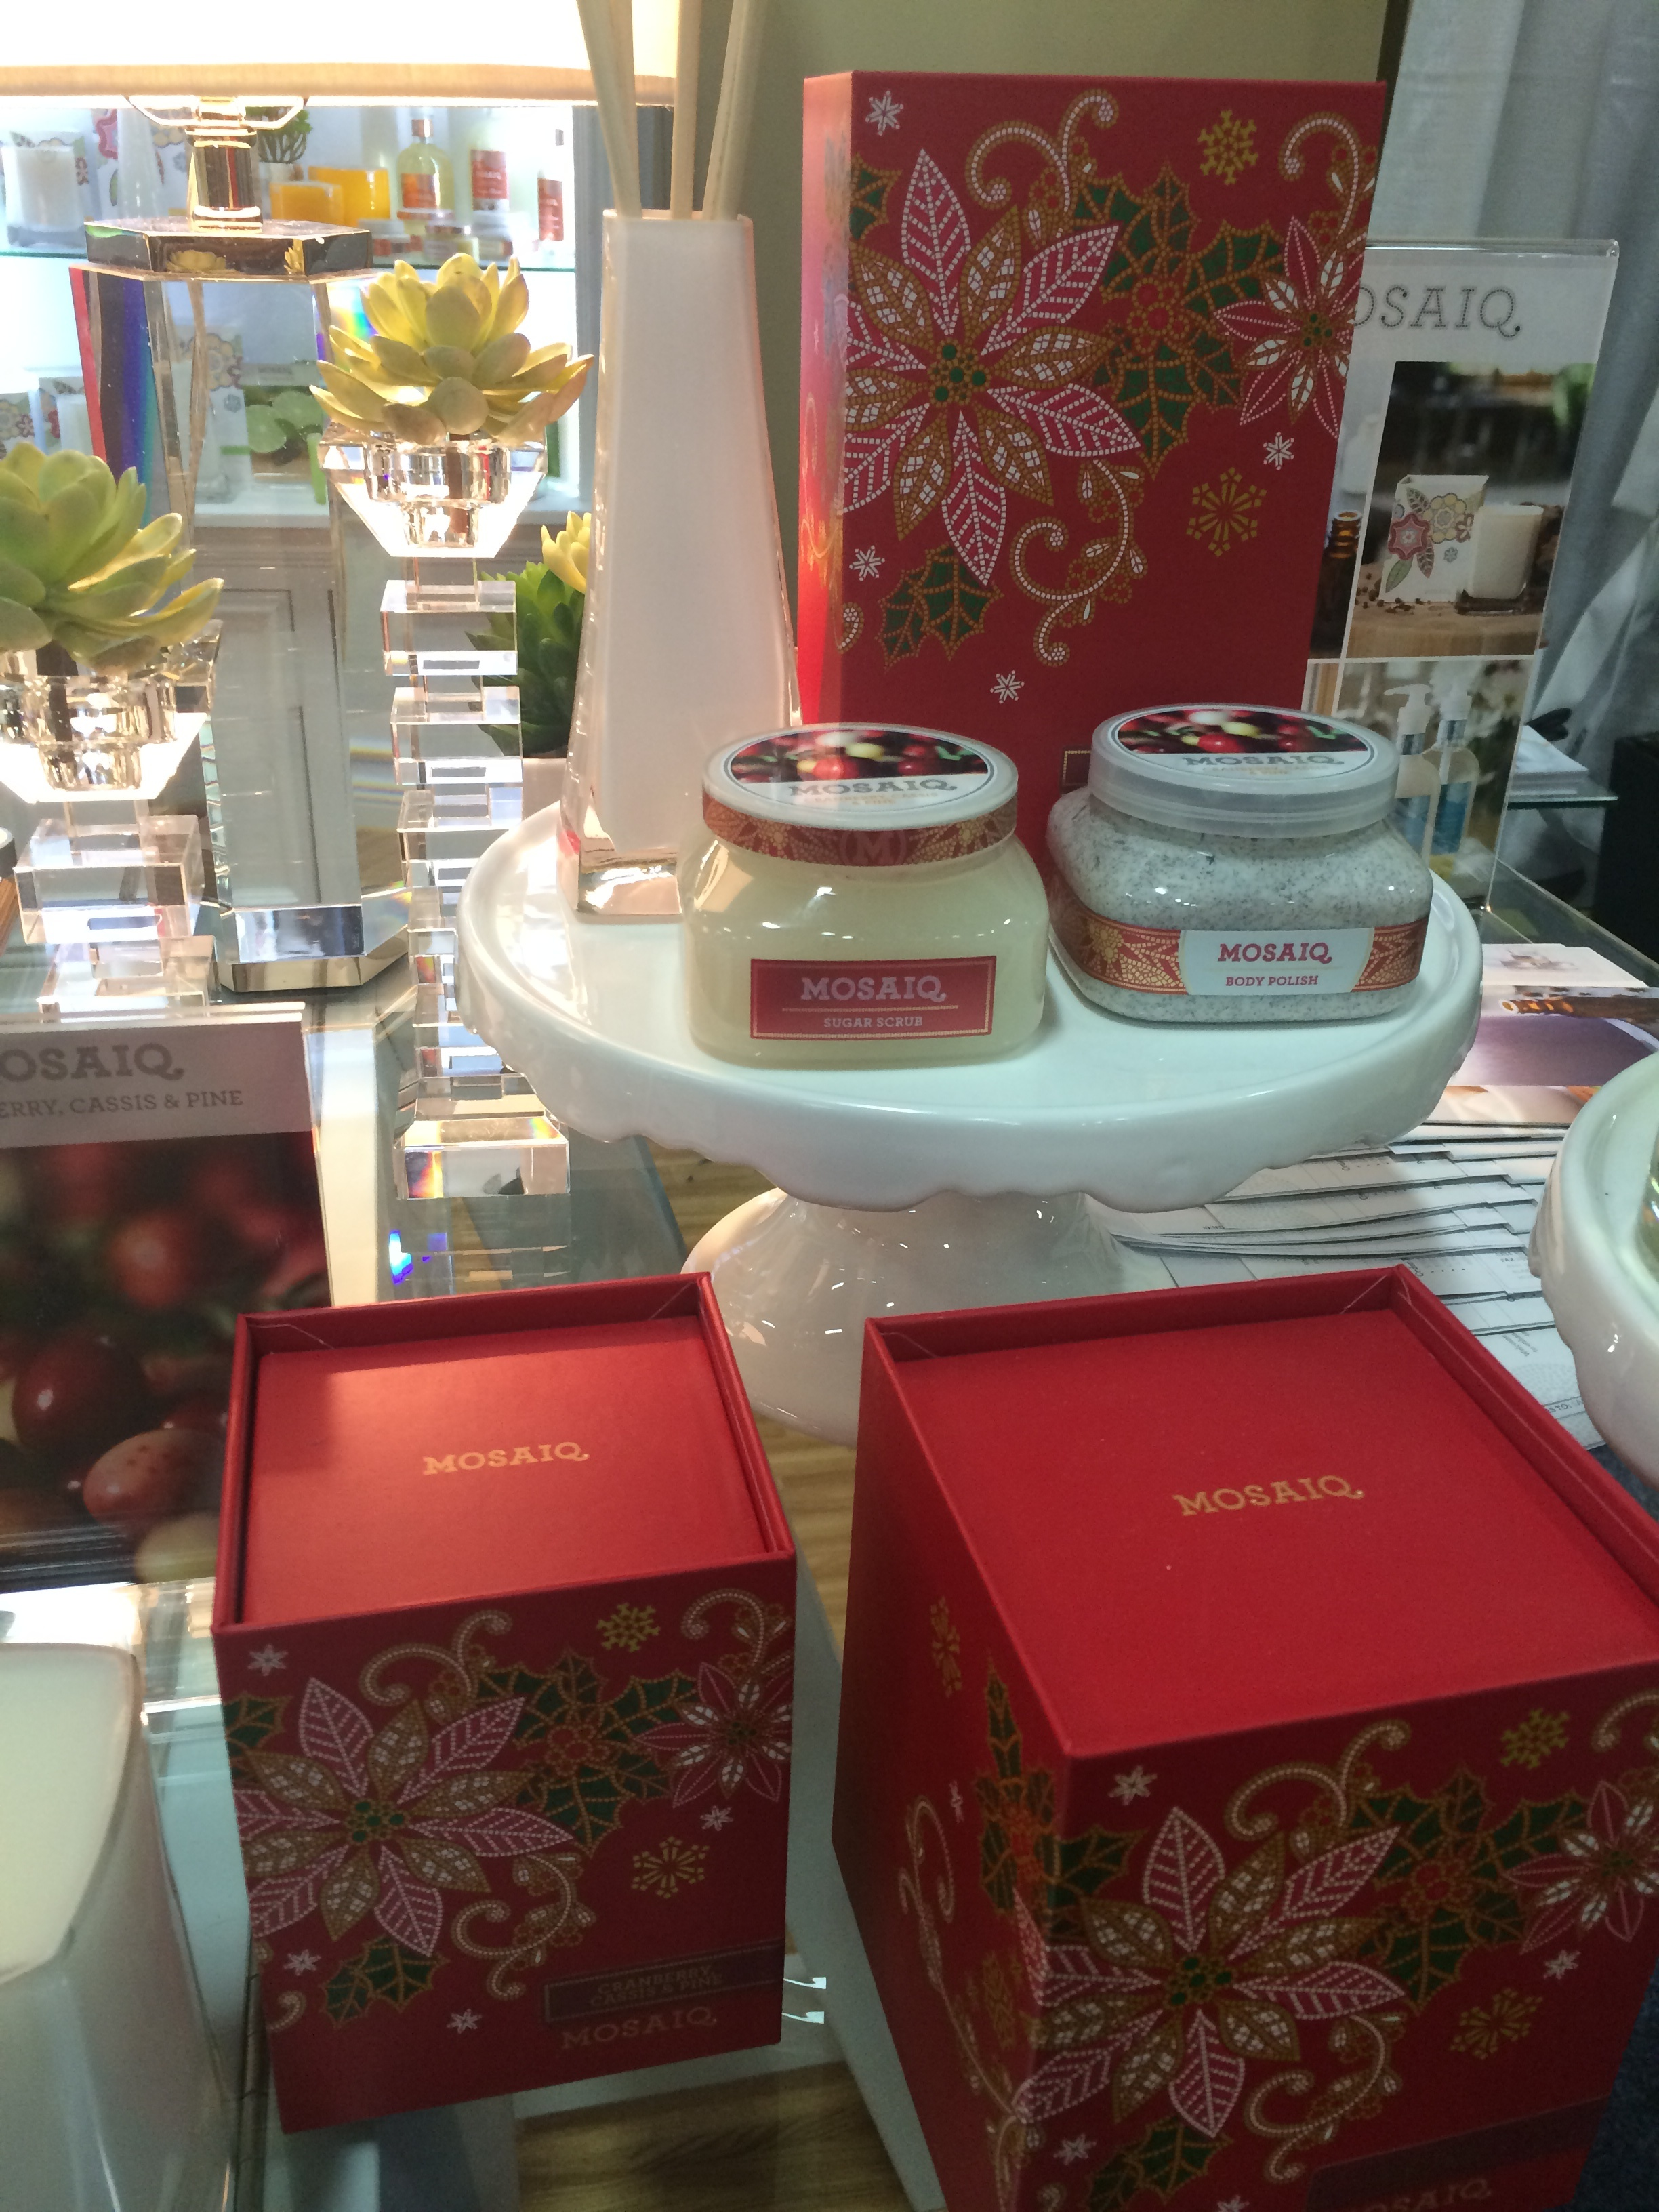 Int'l Spa Association Report: Functional Fragrance